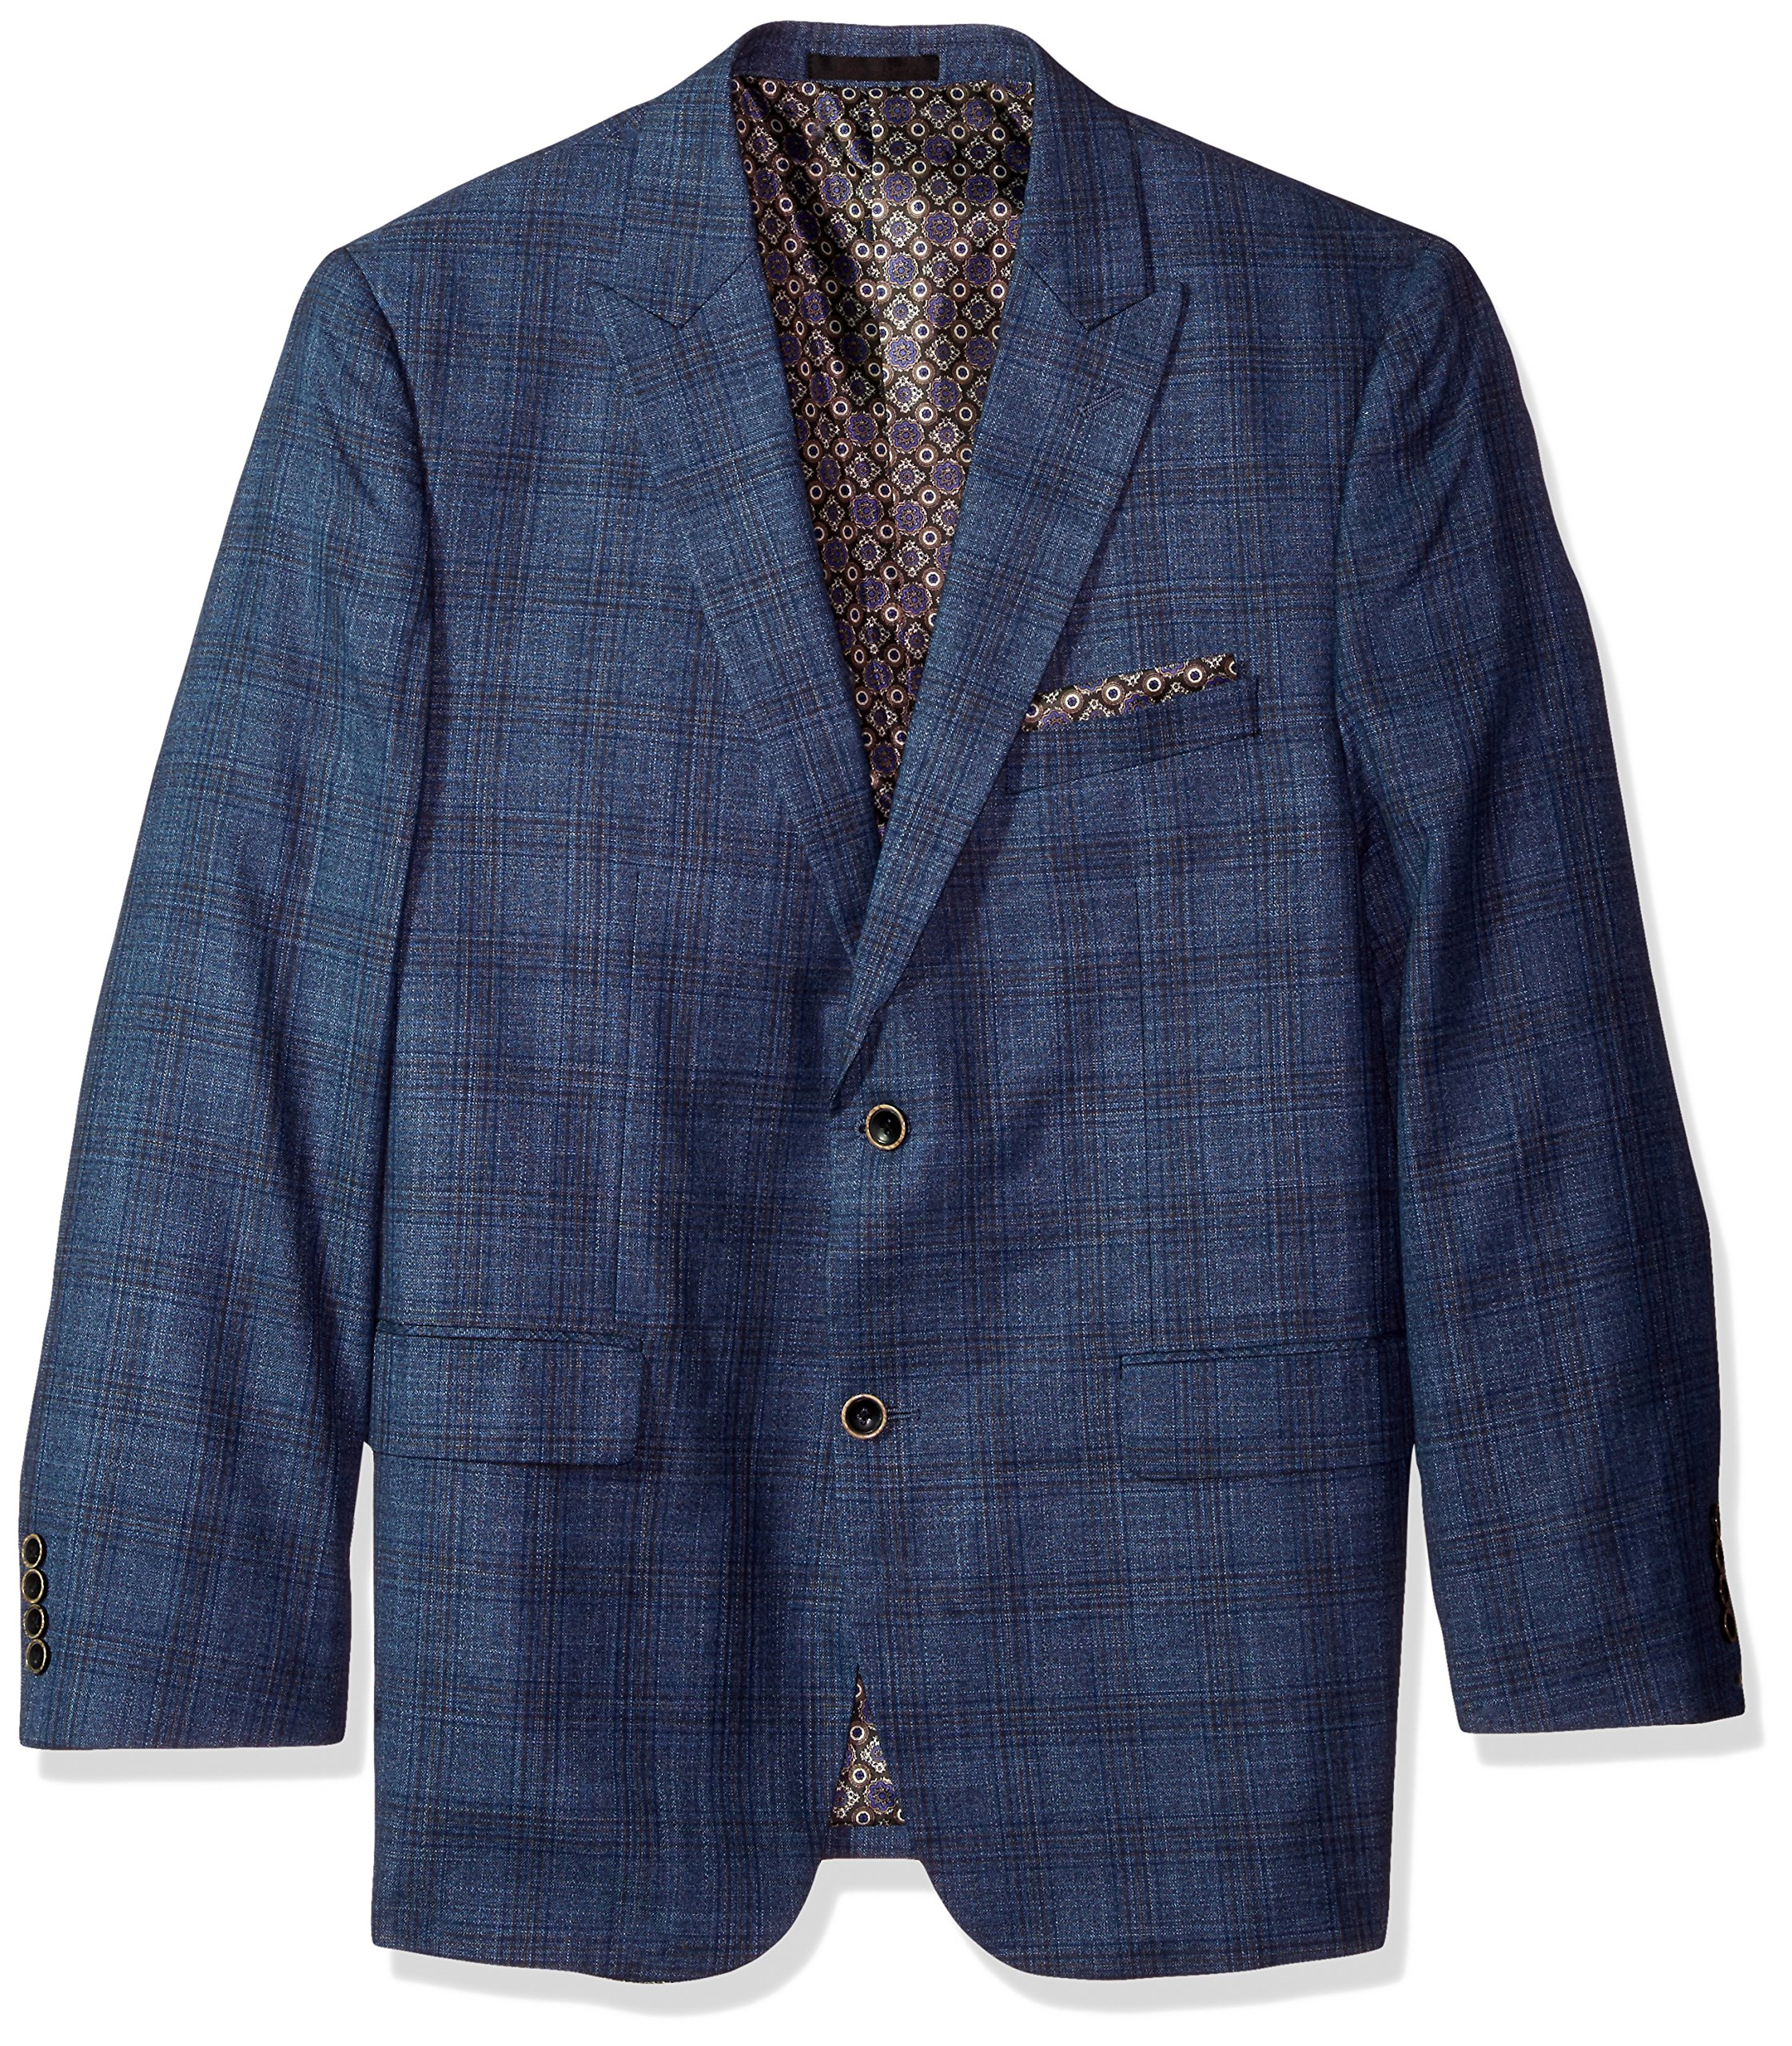 Alexander Julian Colours Men's Big and Tall Single Breasted Modern Fit Plaid Sportcoat, Blue Mix, 58 Regular